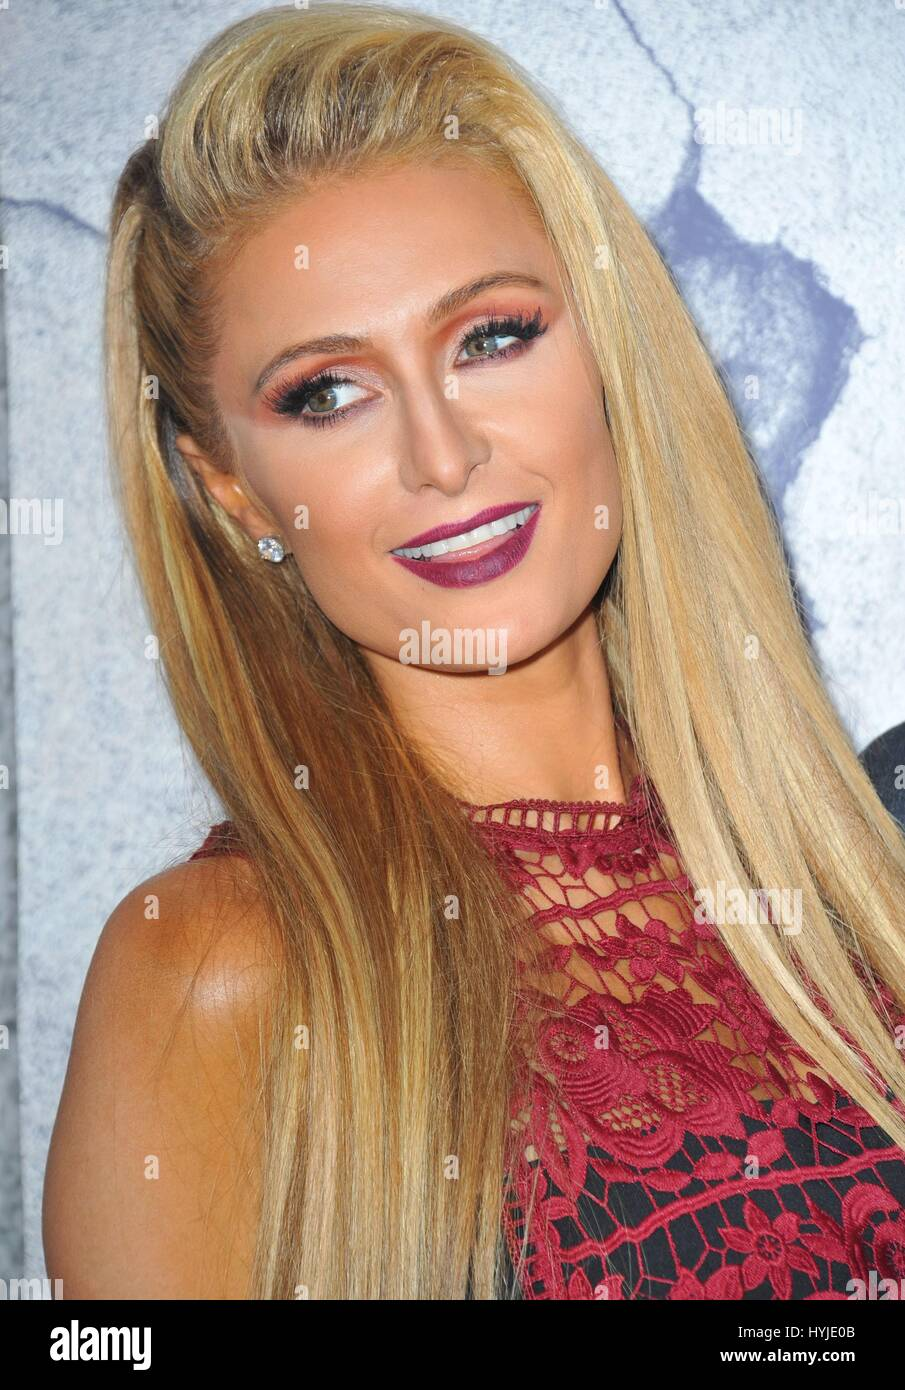 Los Angeles, CA, USA. 4th Apr, 2017. Paris Hilton at arrivals for THE LEFTOVERS Season 3 Premiere, Avalon Hollywood, - Stock Image